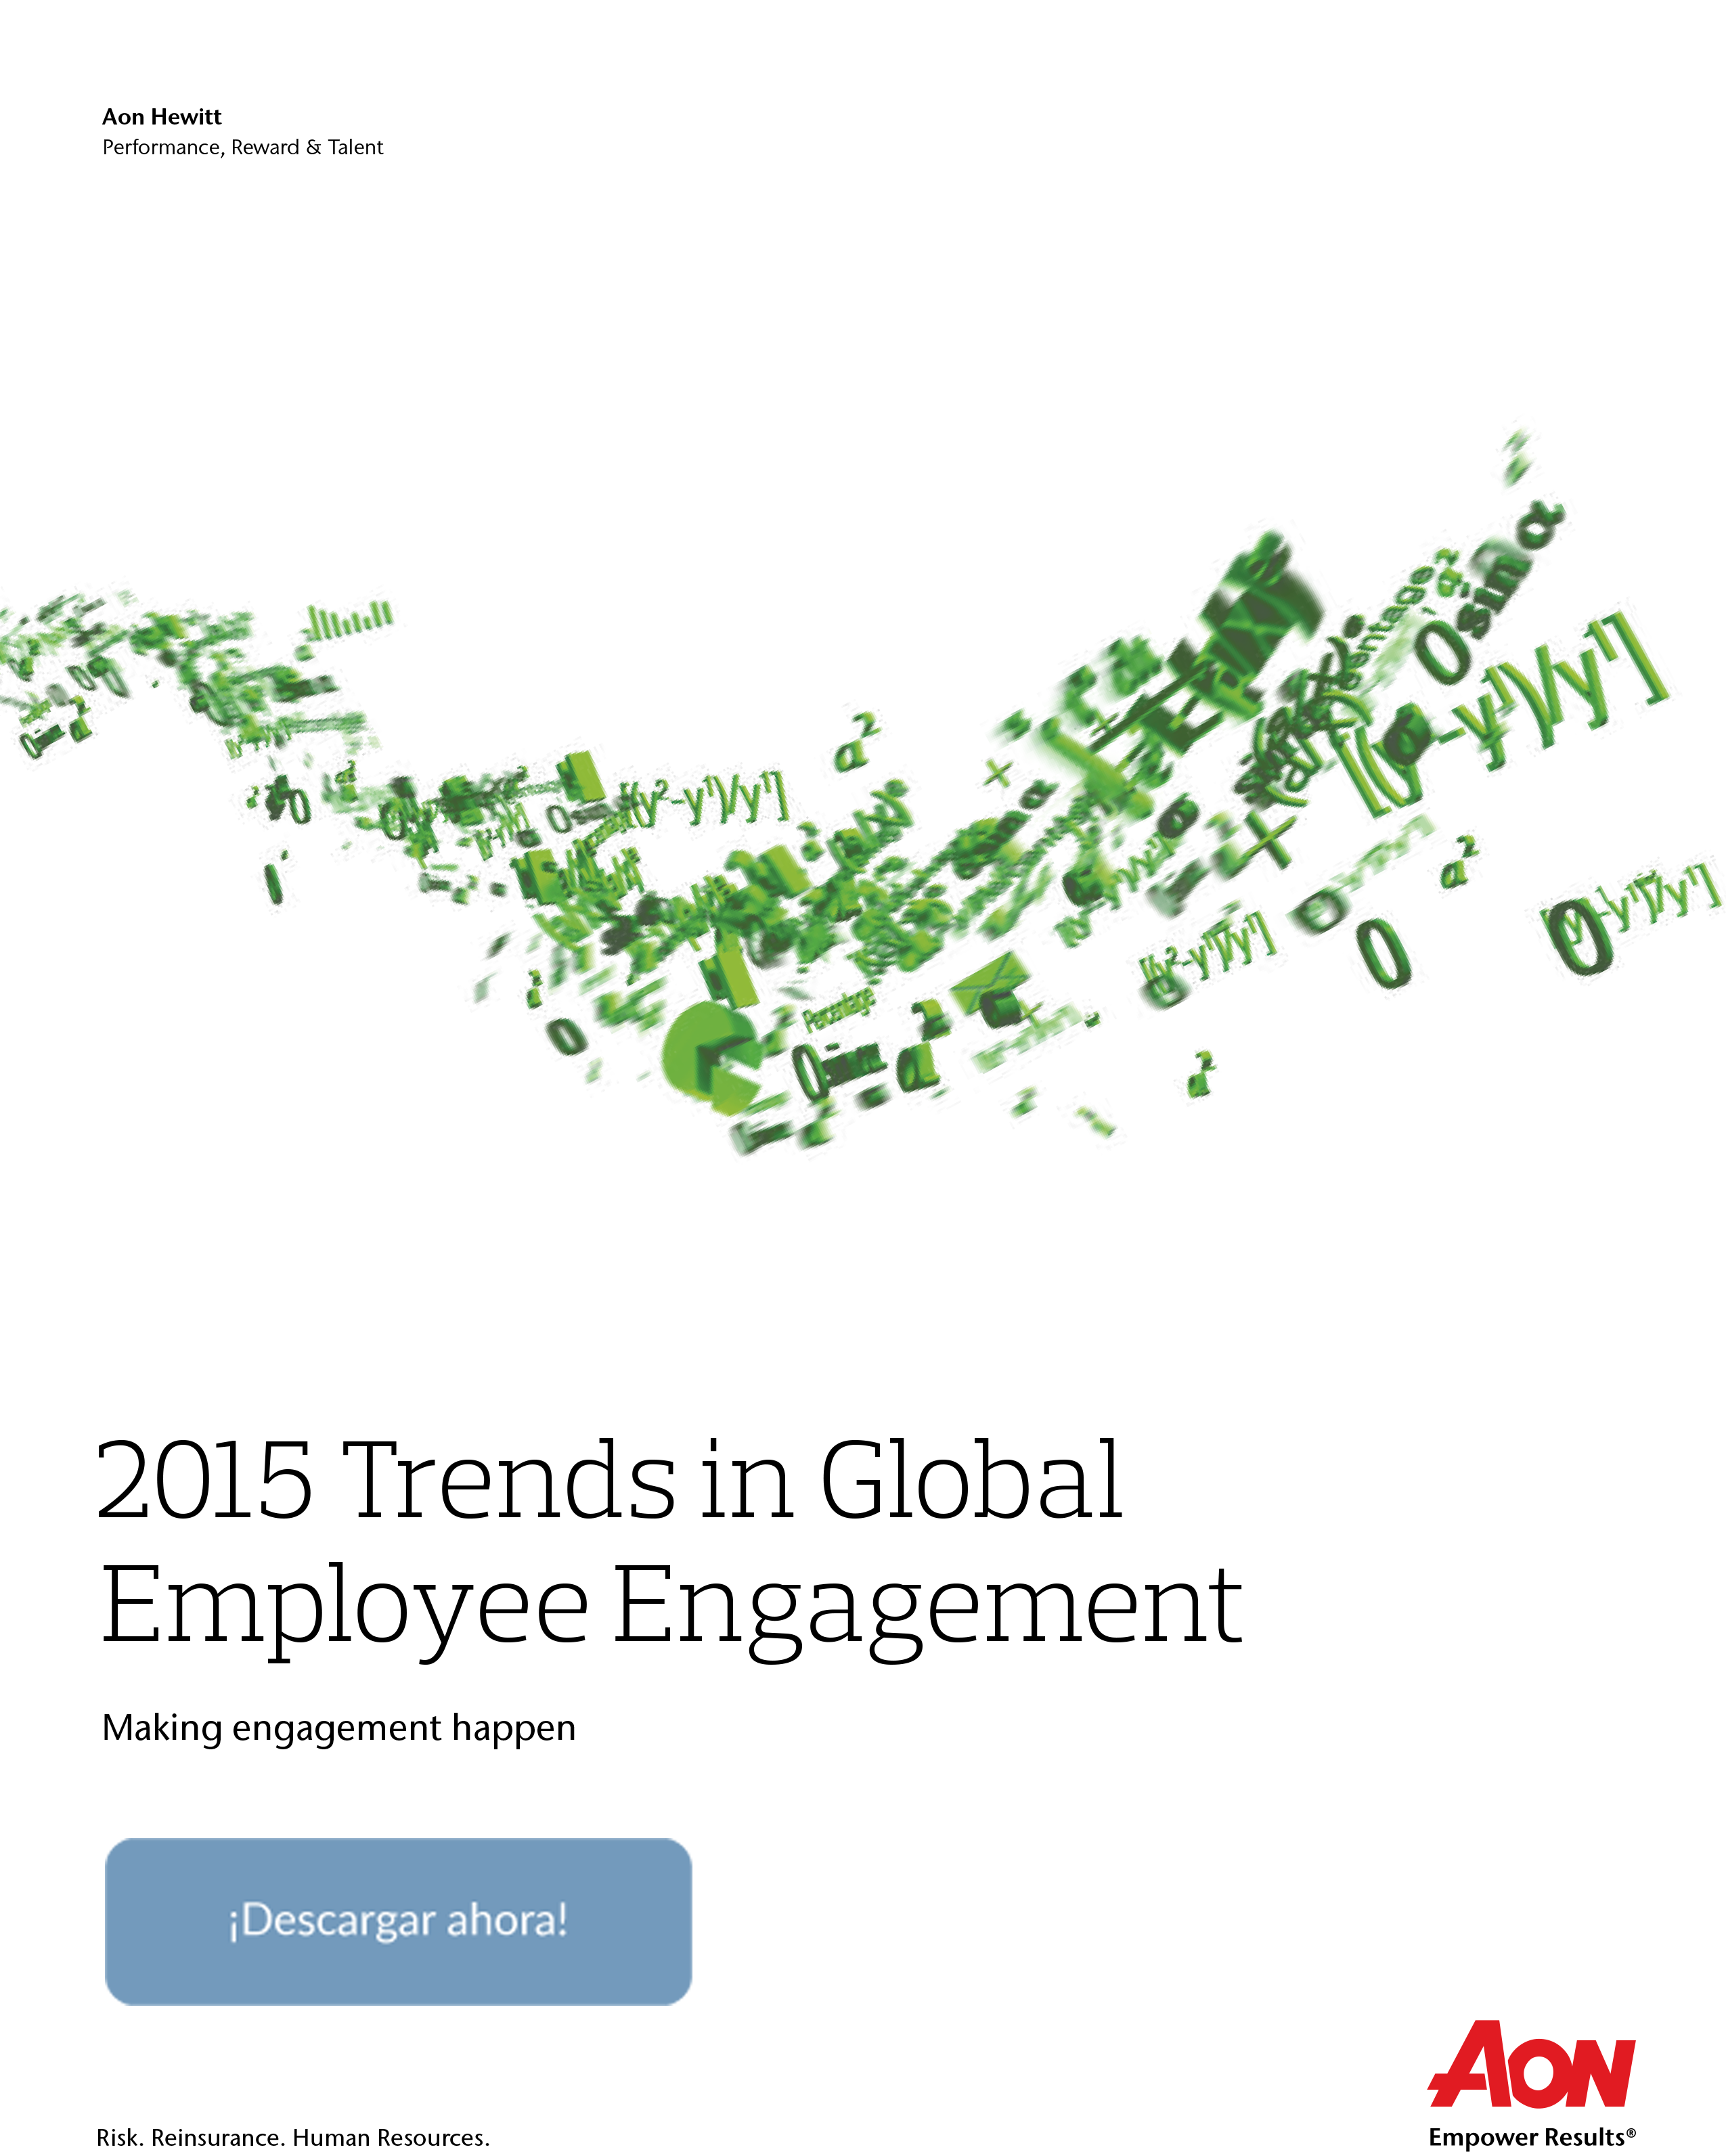 2015 Final Trends in Global Employee Engagement